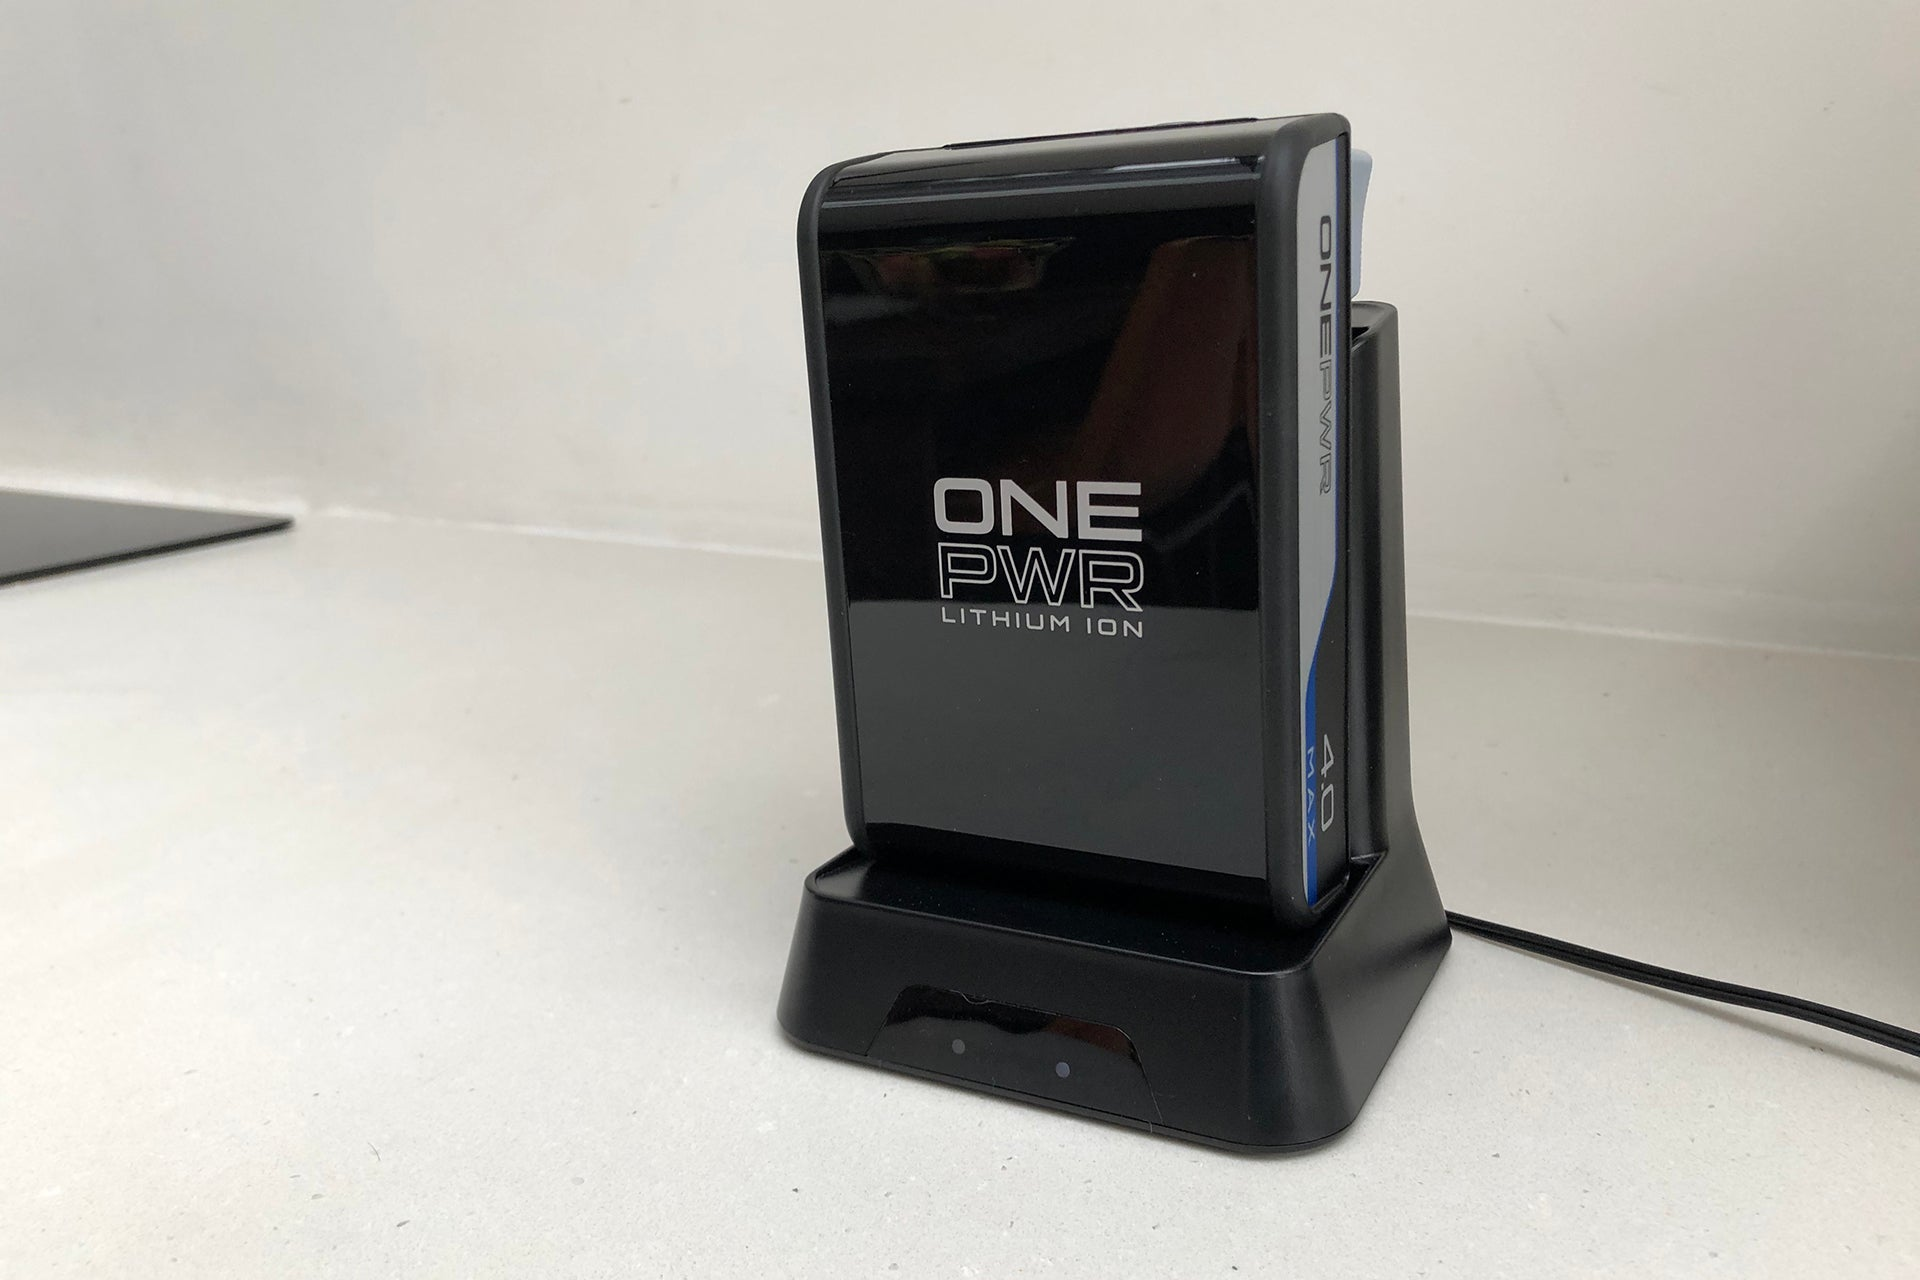 Vax OnePWR Glide battery charger